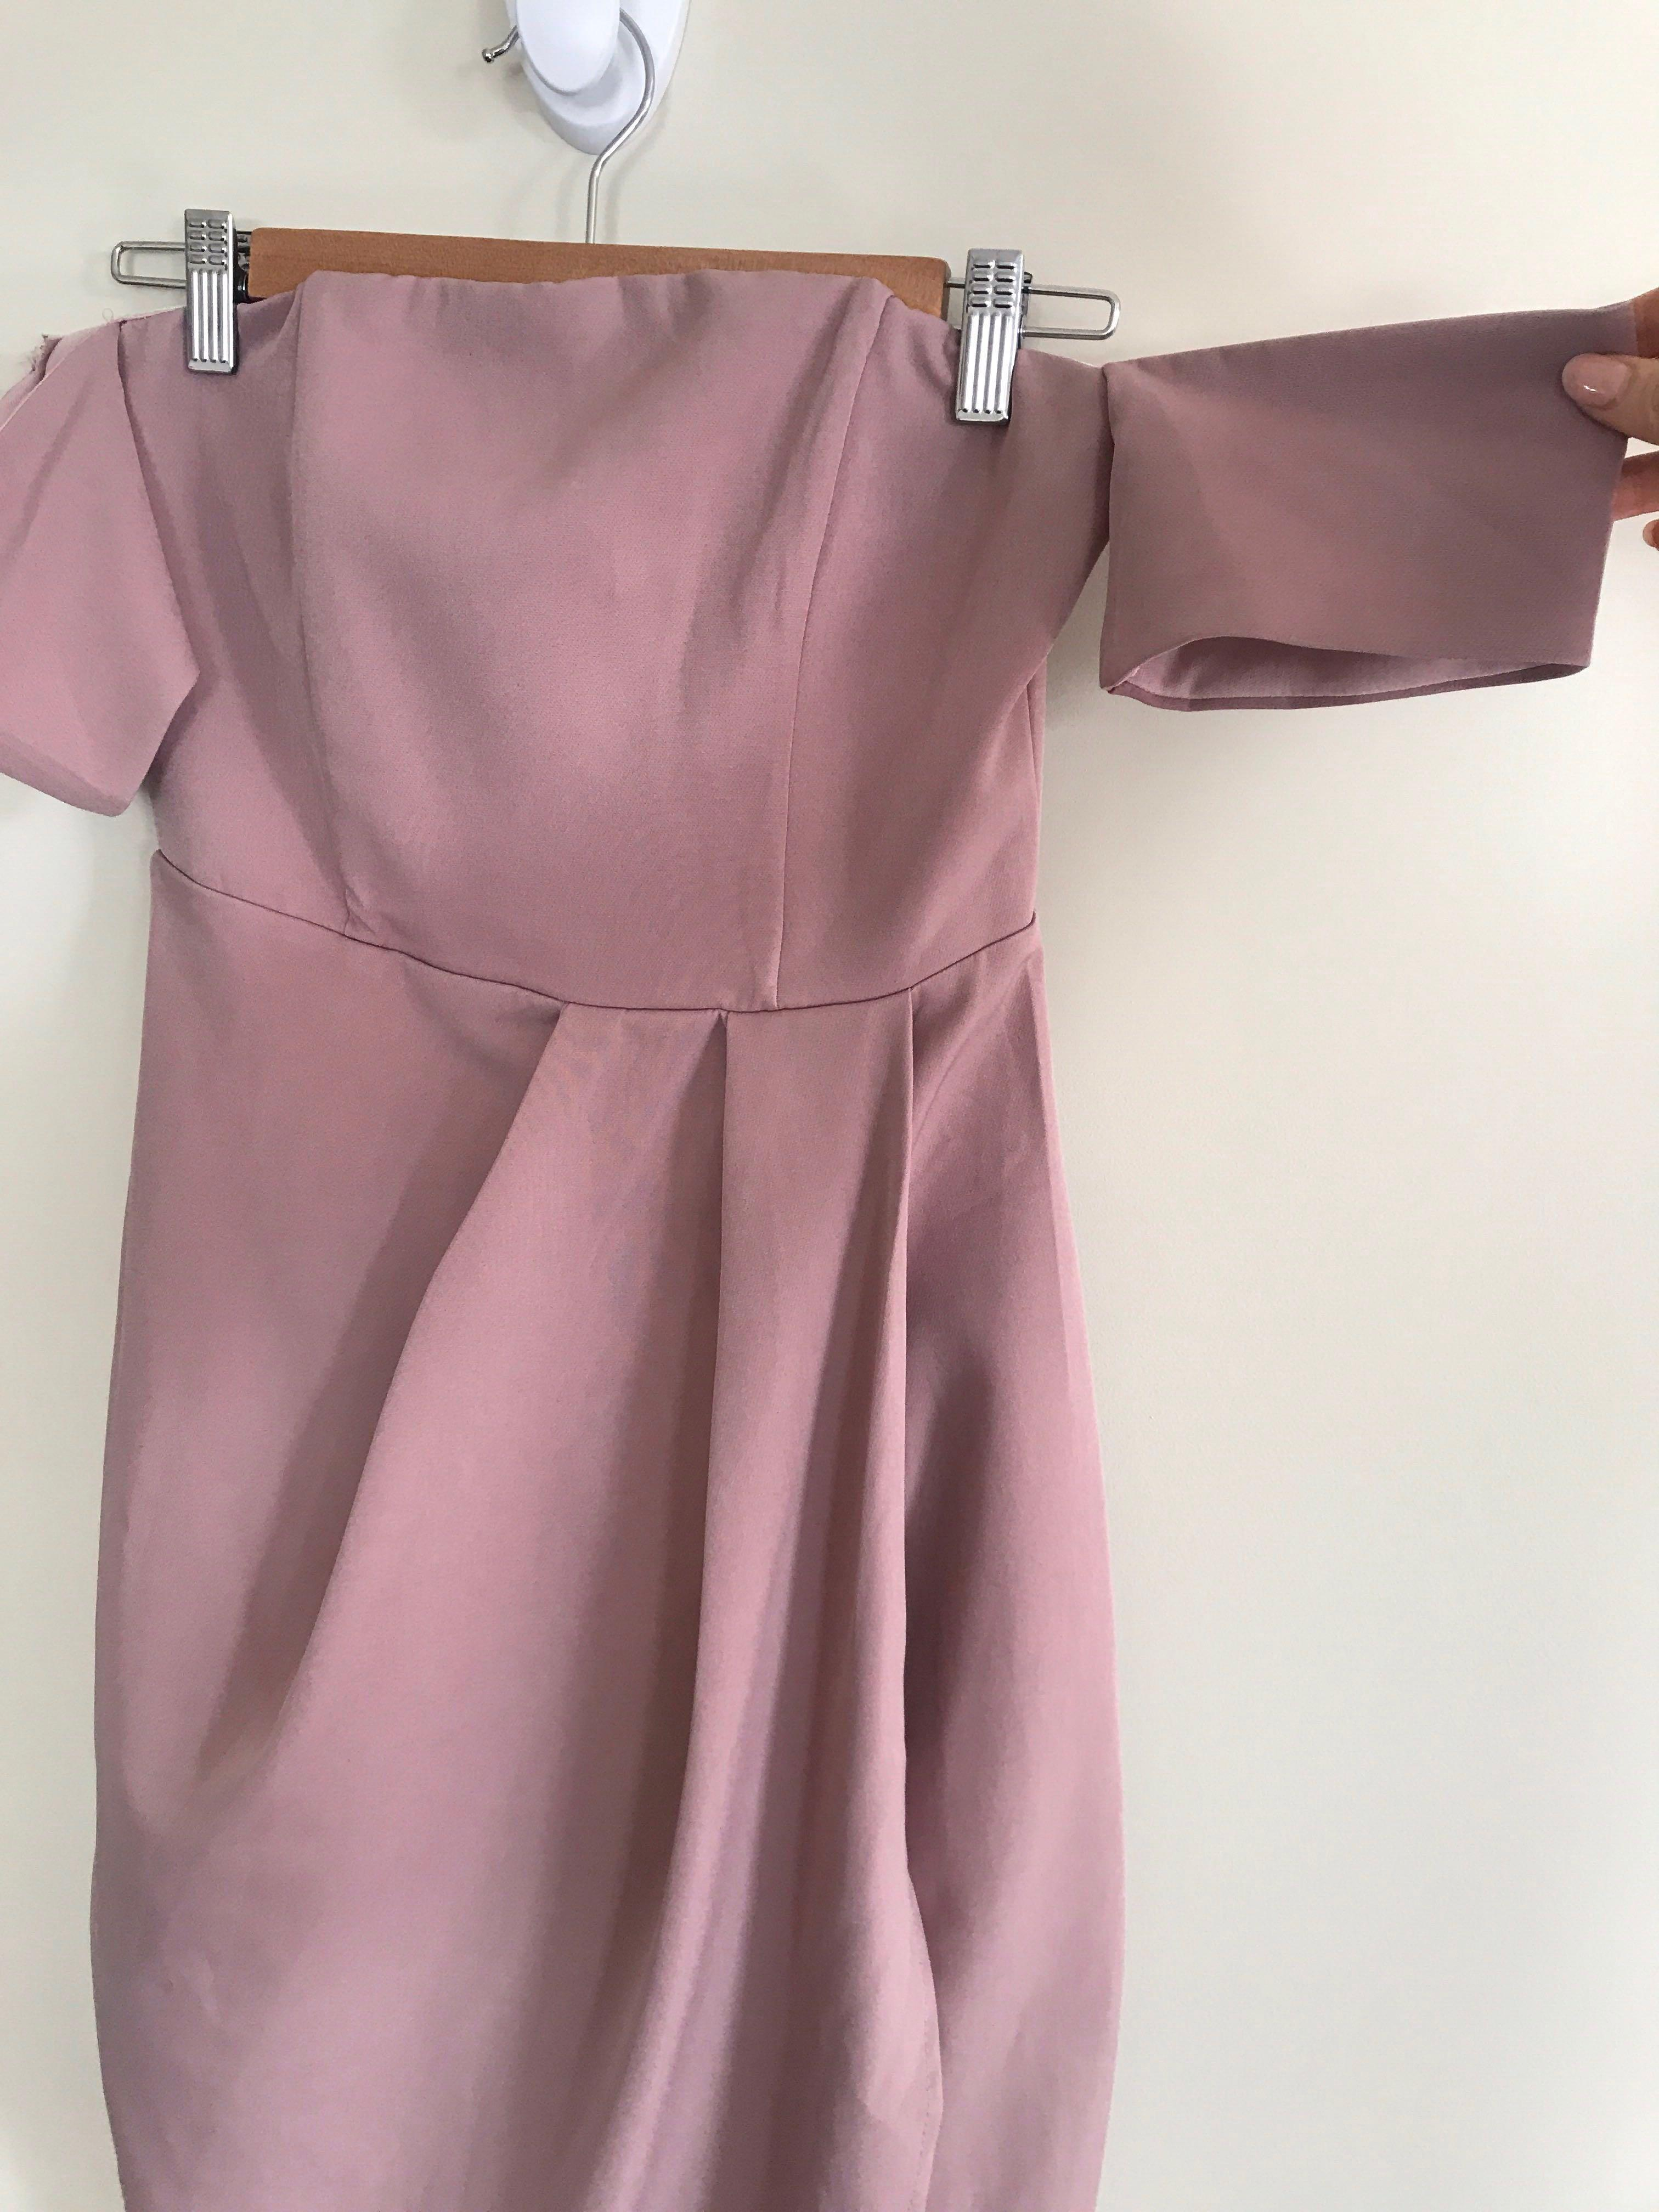 White Fox Boutique Dusty Pink Delilah Dress - Postage Included